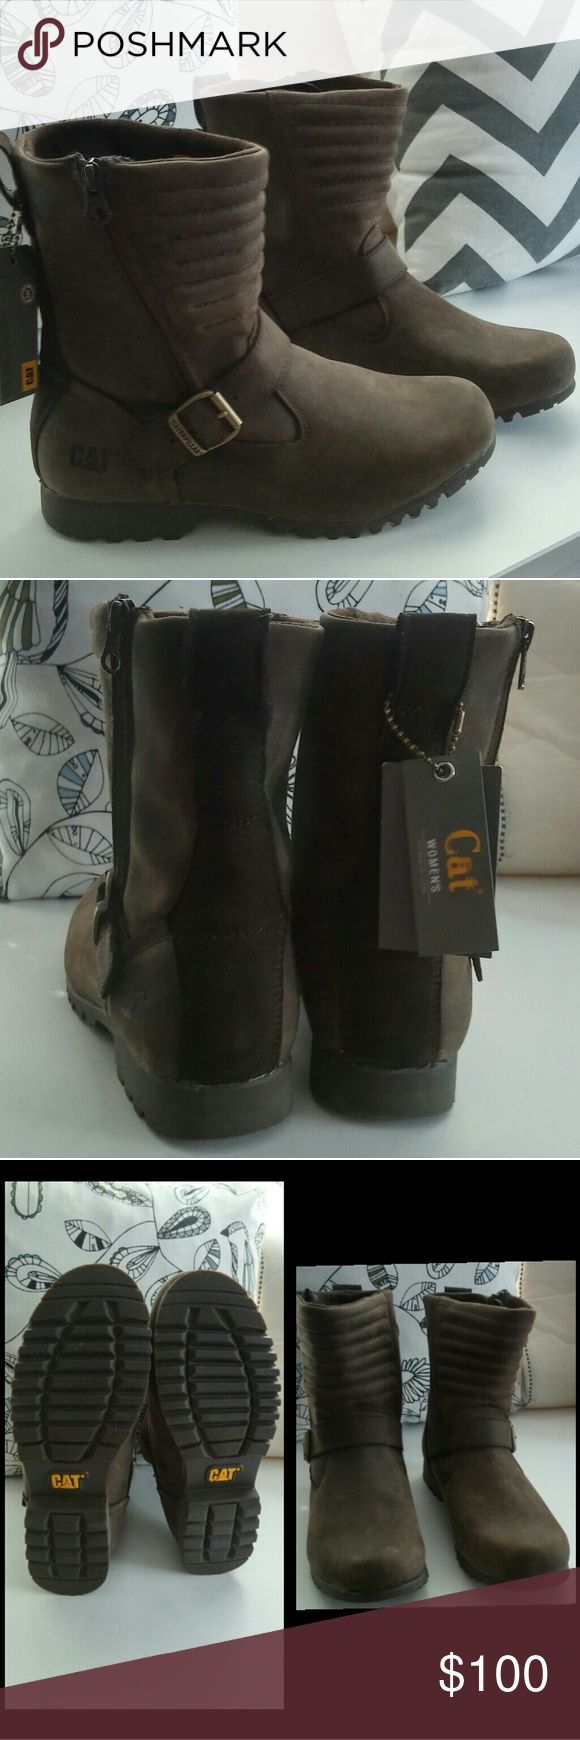 NWOT Brown Caterpillar boots Brand new motorcycle waterproof boots. No box Caterpillar Shoes Combat & Moto Boots